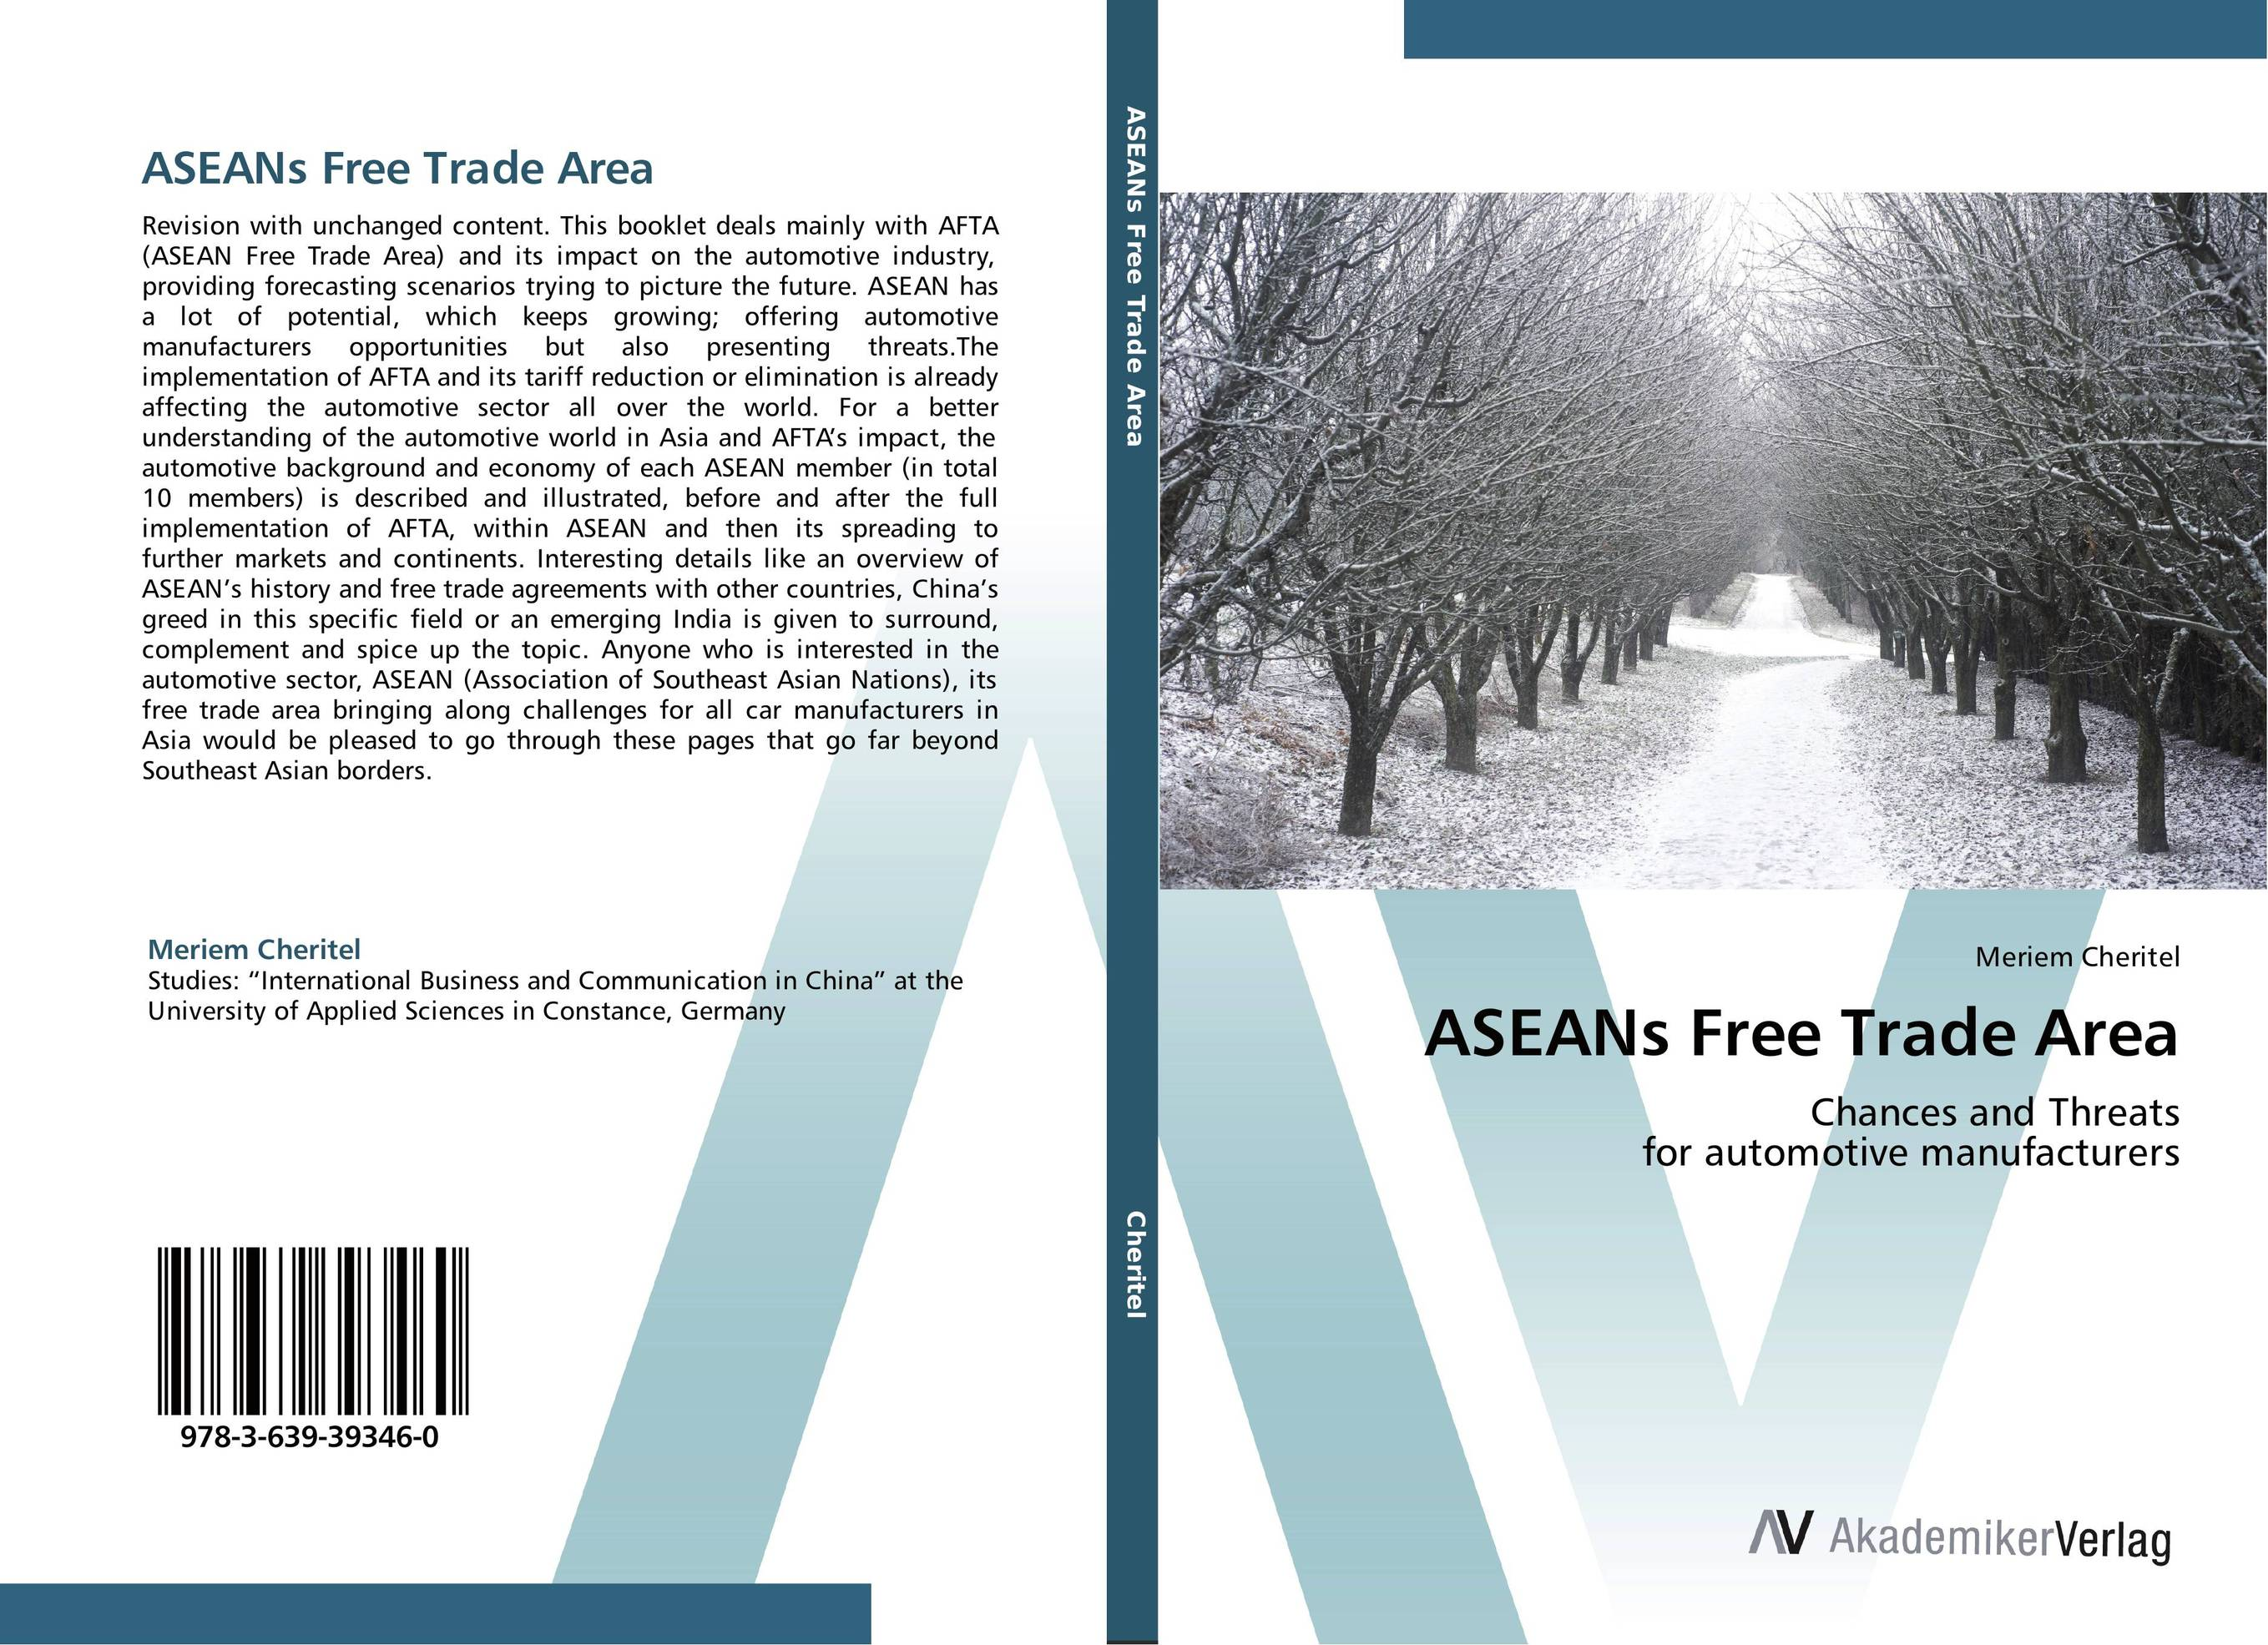 ASEANs Free Trade Area